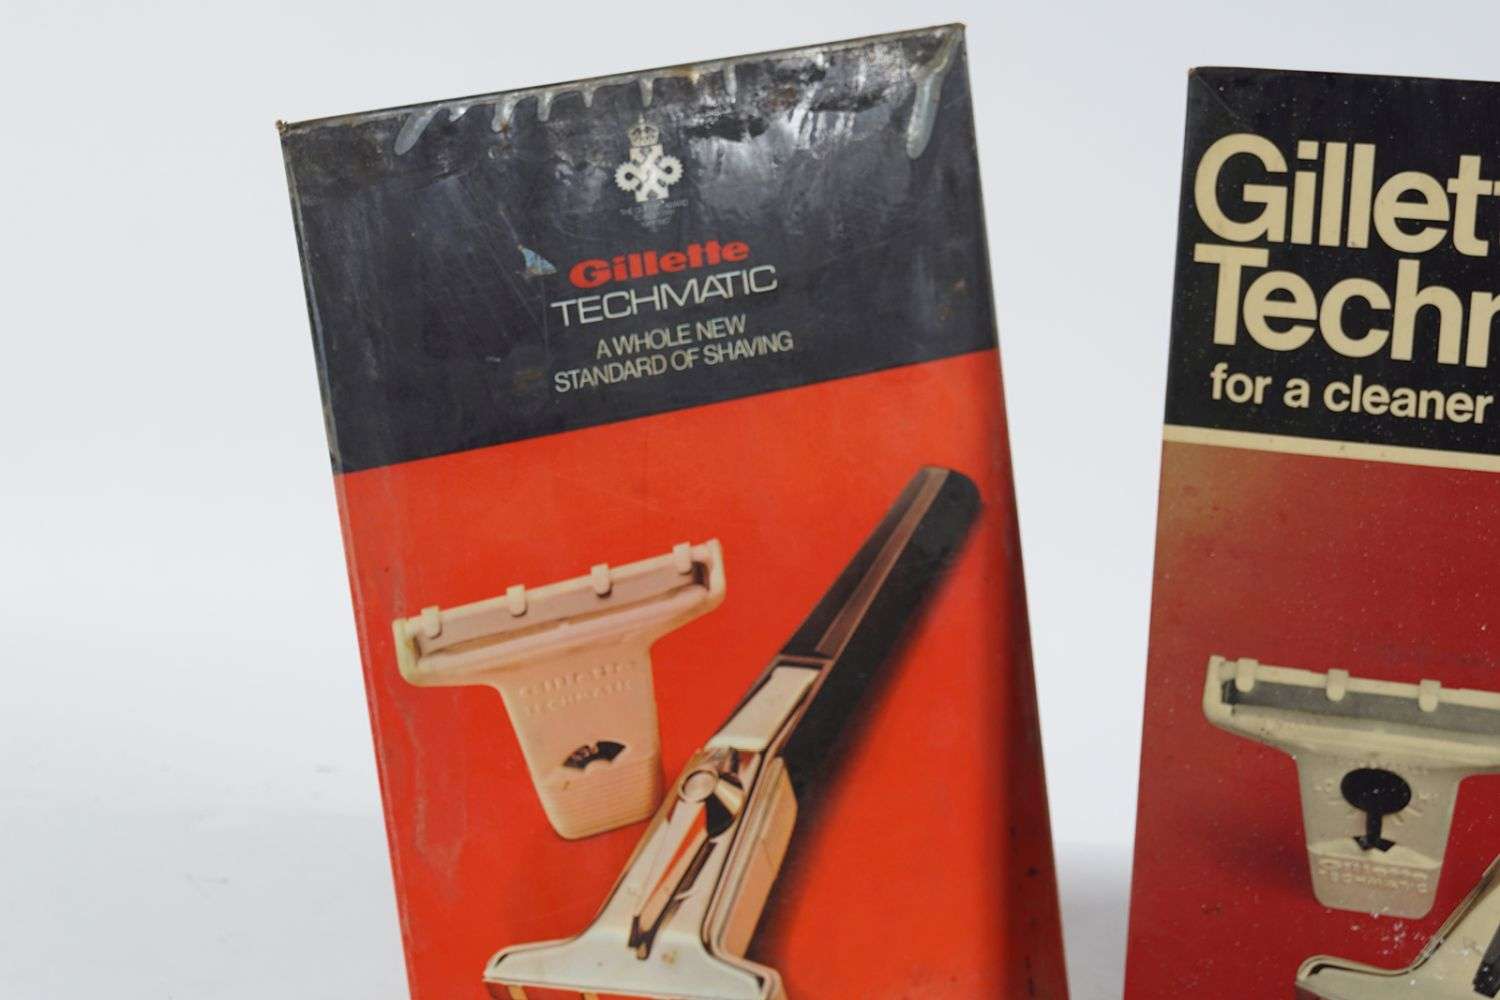 GILLETTE TECHMATIC SELF- STANDING SIGN - Image 3 of 6